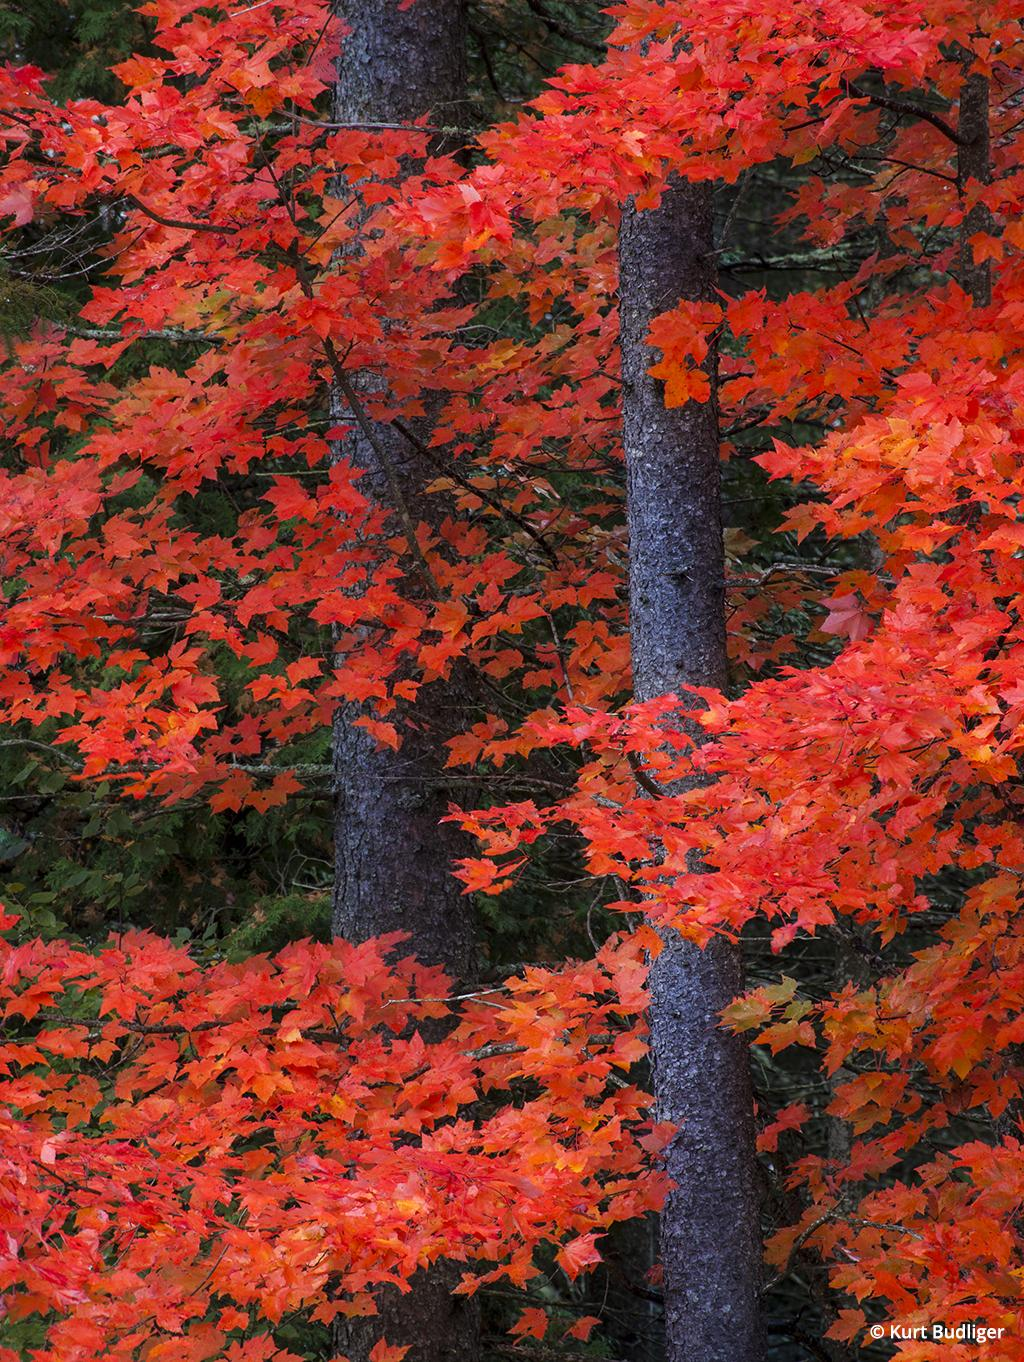 Tip 3: A longer focal length was used to isolate a riot of vibrant red maple leaves wrapped around some spruce trunks near Danville, Vermont.